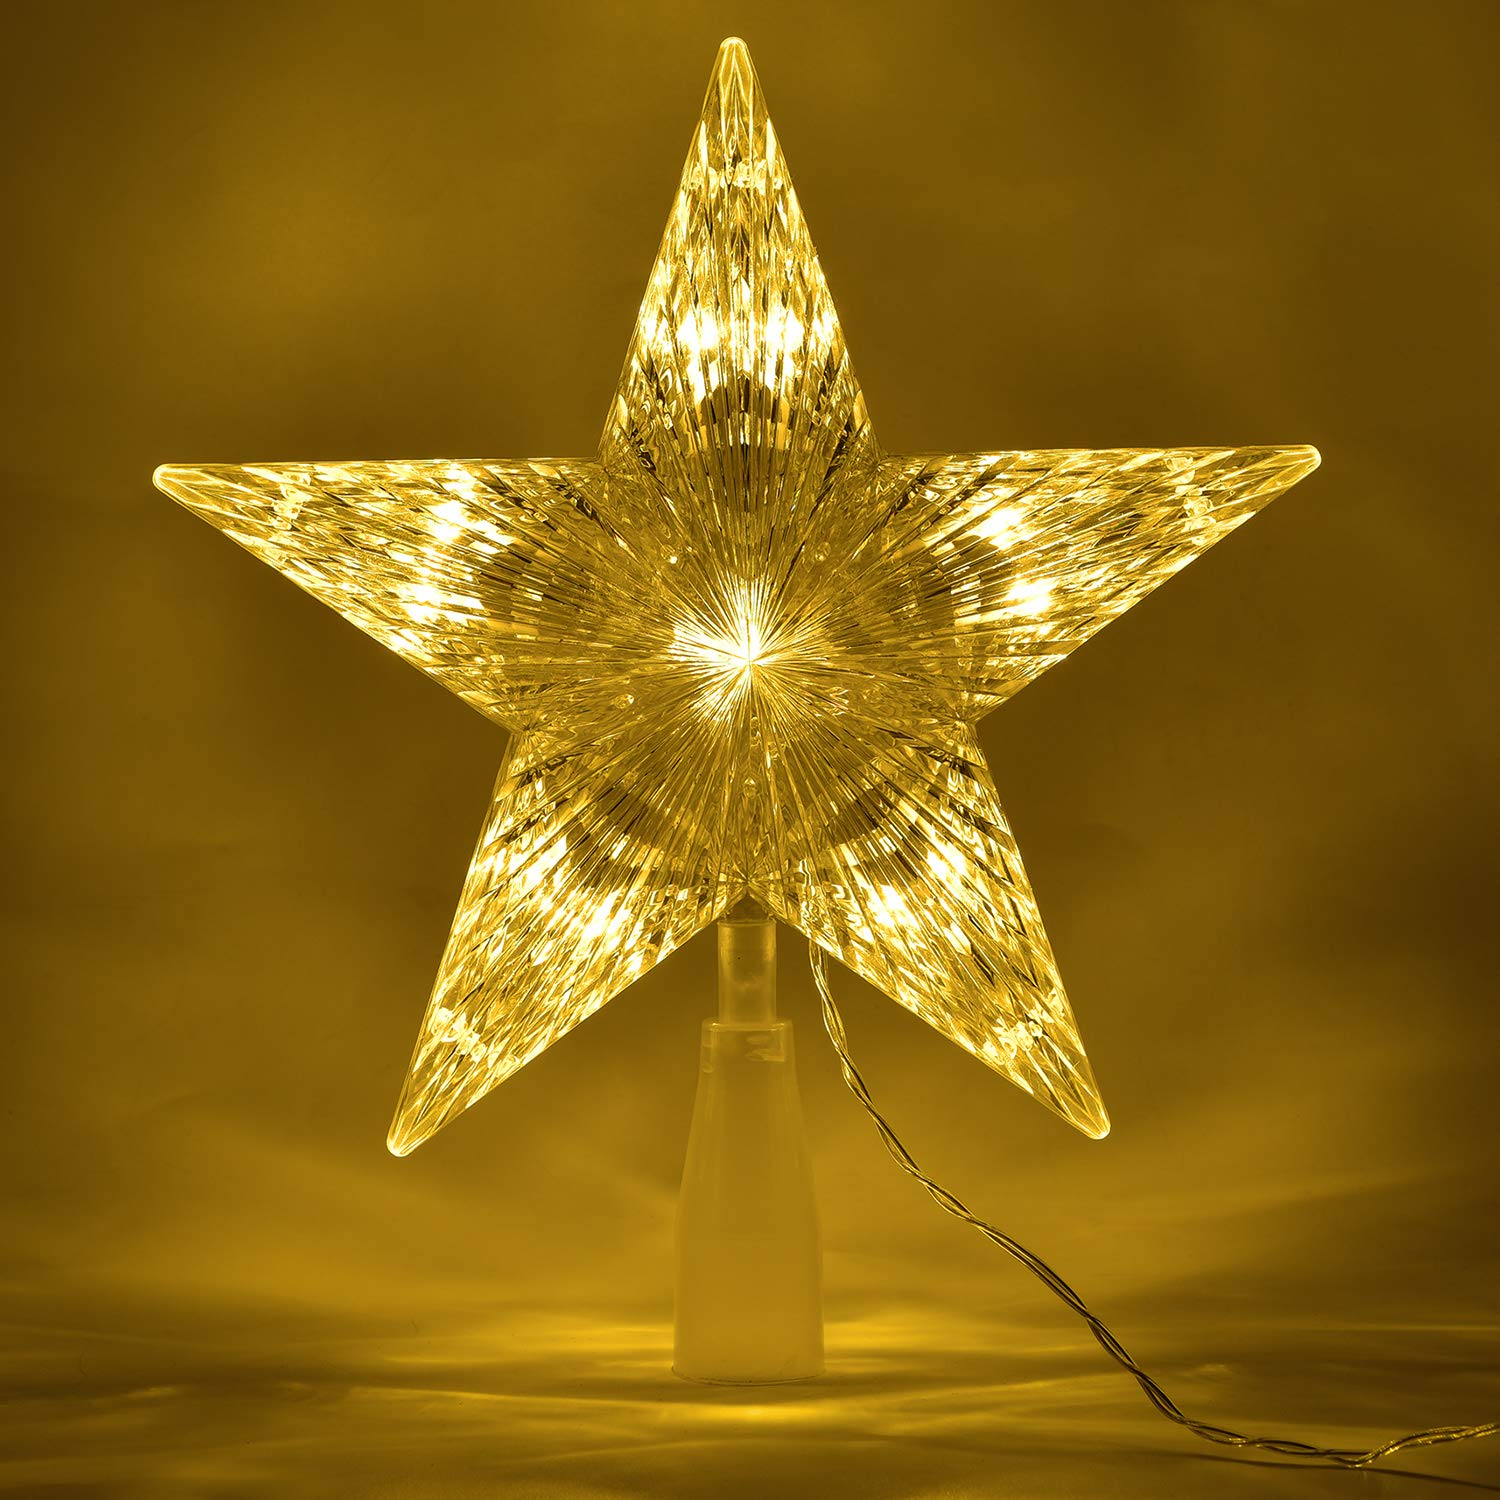 Artiflr 10 Inch White Christmas Star Tree Topper with LED Light, Christmas Tree Topper Star Treetop Decoration for Christmas Tree Home Decor